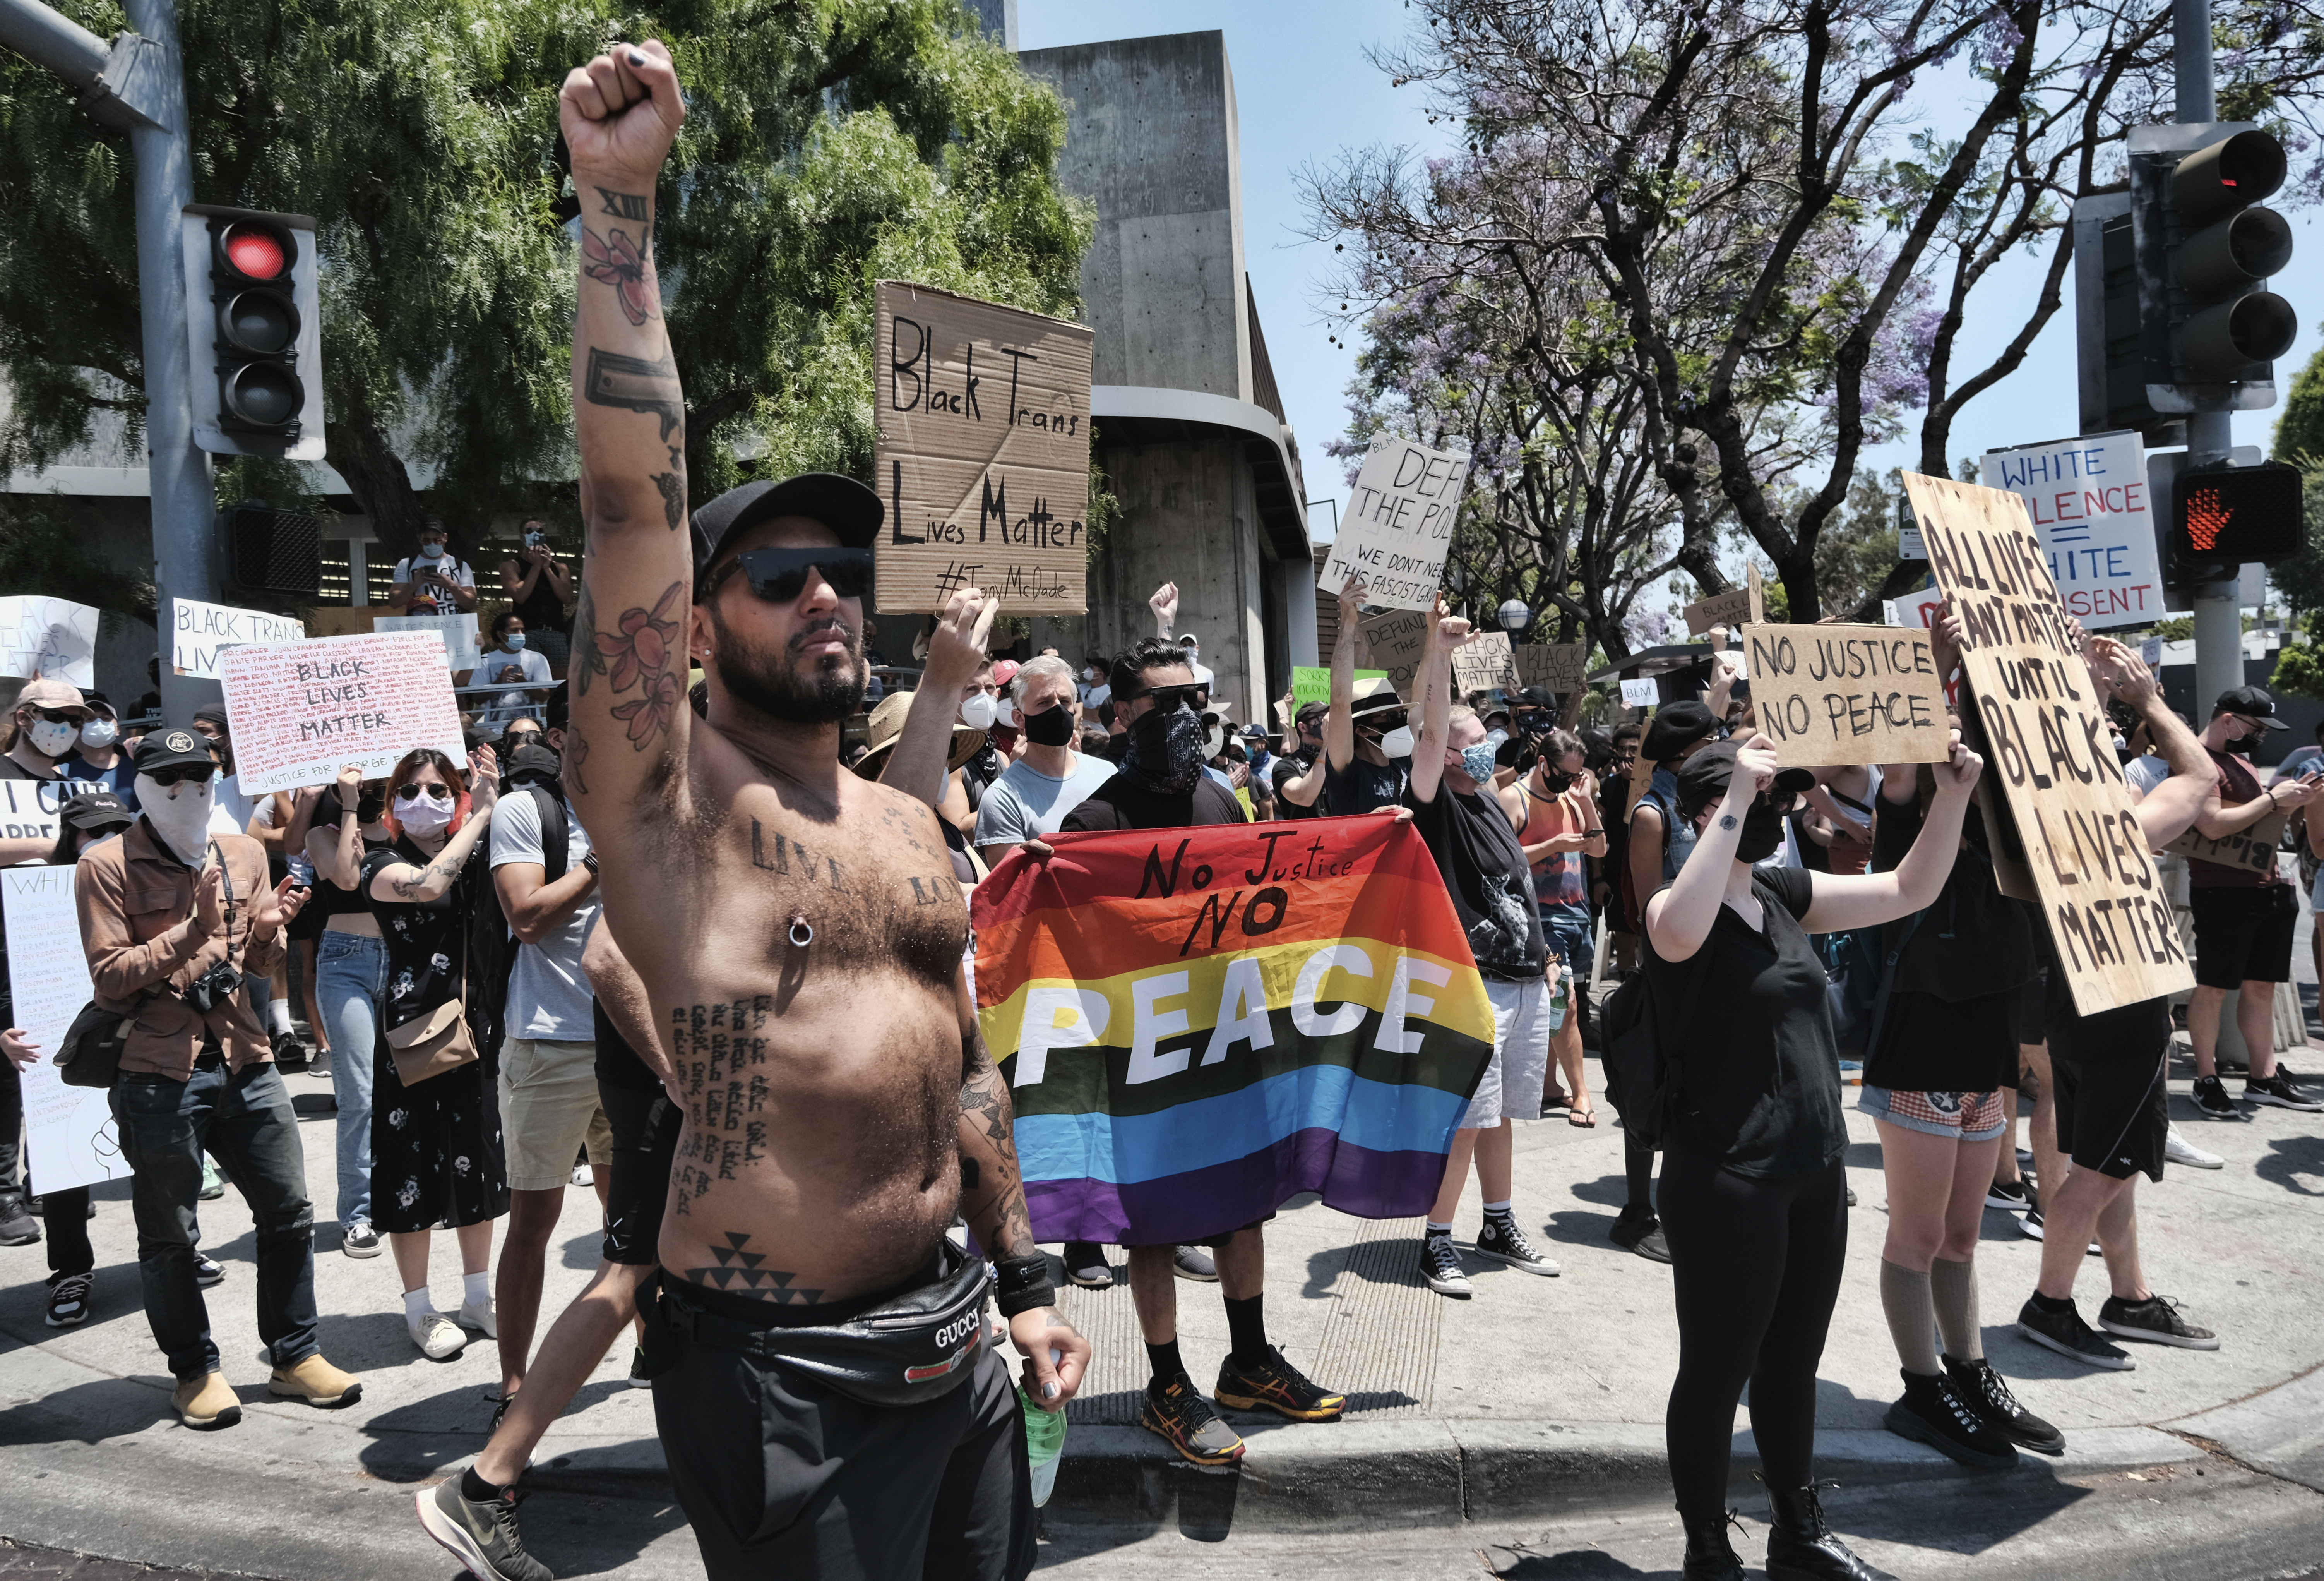 Newport Beach protesters scatter as car heads toward them; suspect in custody: report